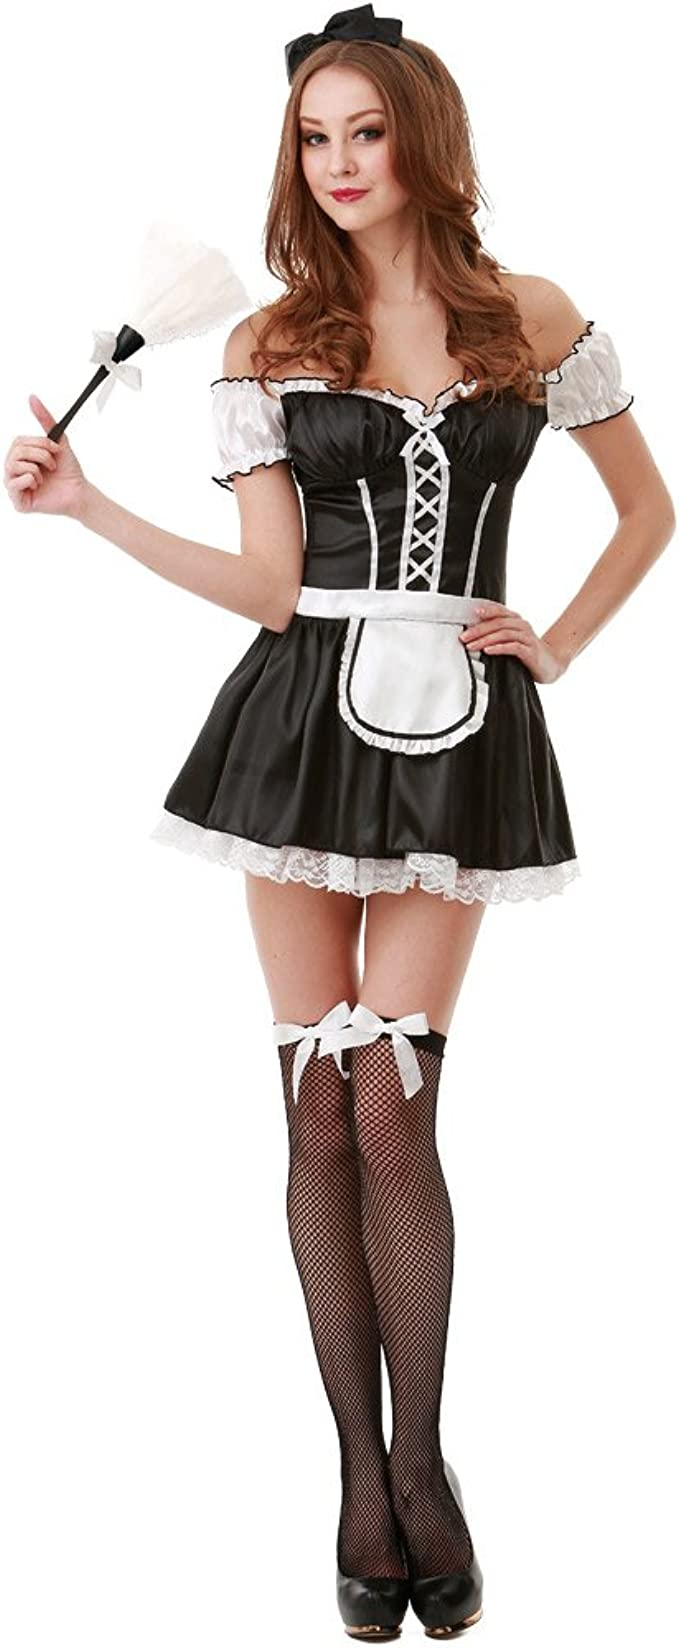 Amazon.com: French Maid Disfraz de Halloween para mujer ...